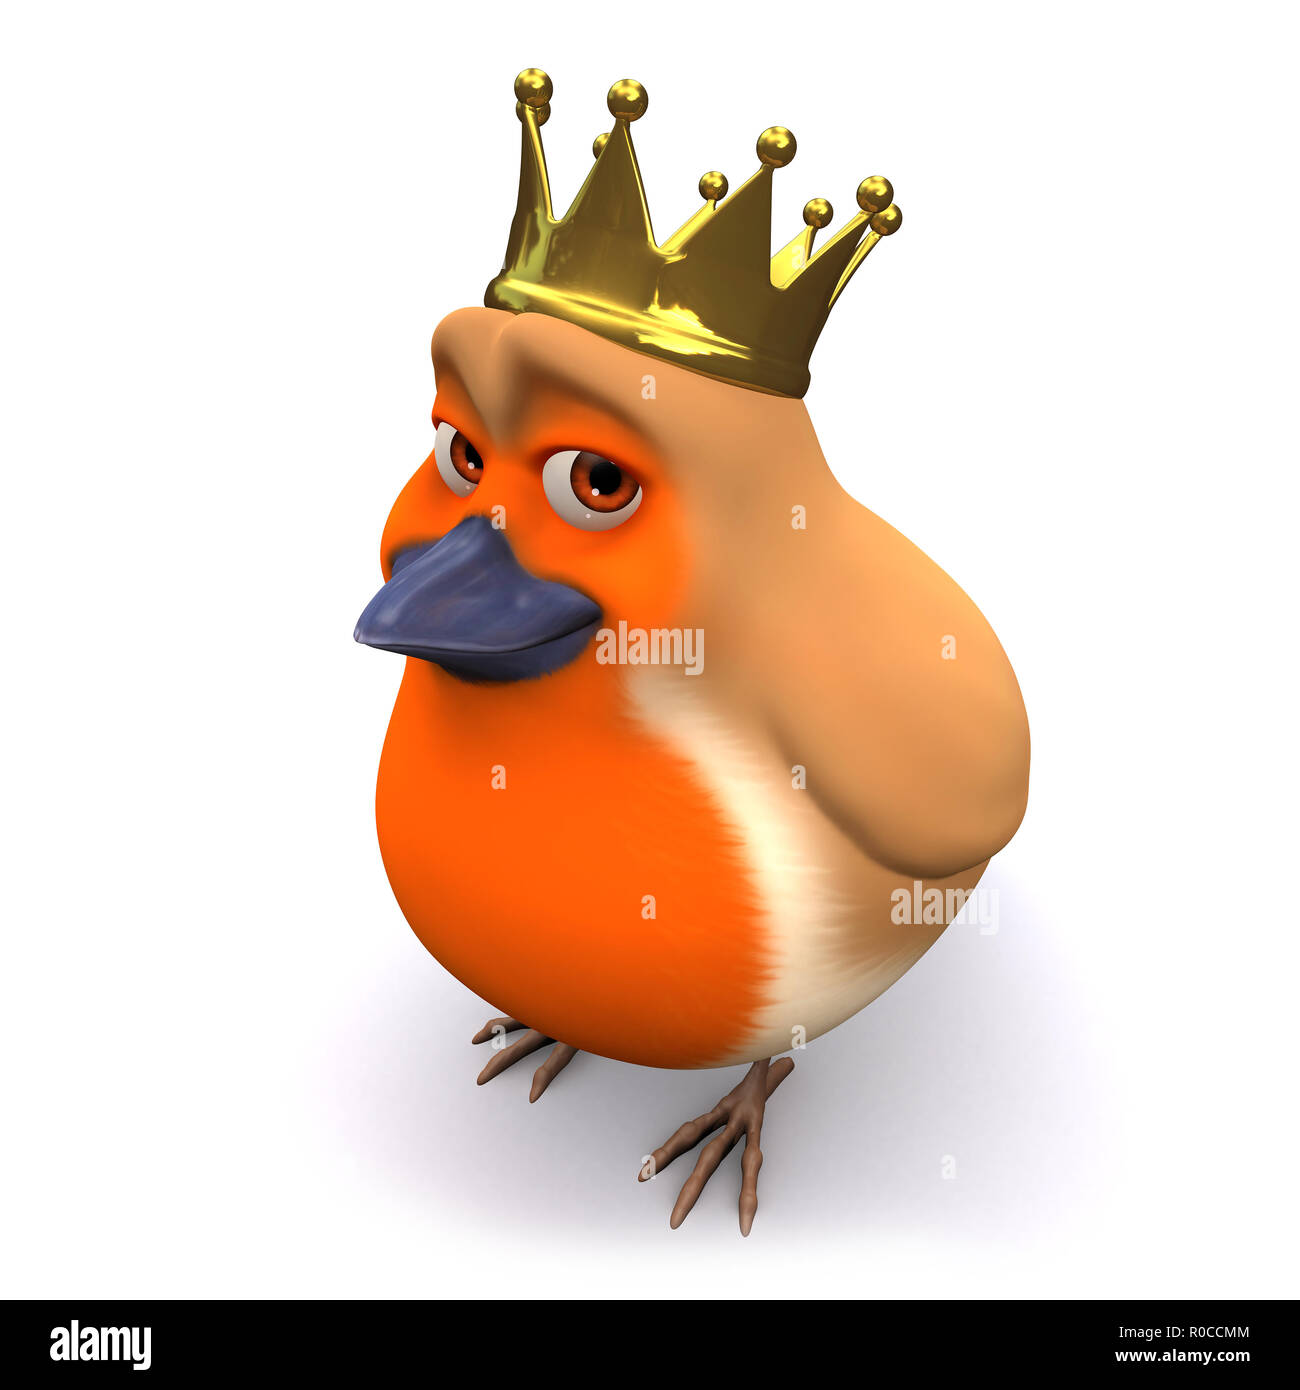 3d Cartoon Christmas Robin Bird Wears A Gold Royal Crown Stock Photo Alamy The film premiered on hallmark channel on november 27, 2015. https www alamy com 3d cartoon christmas robin bird wears a gold royal crown image224008196 html